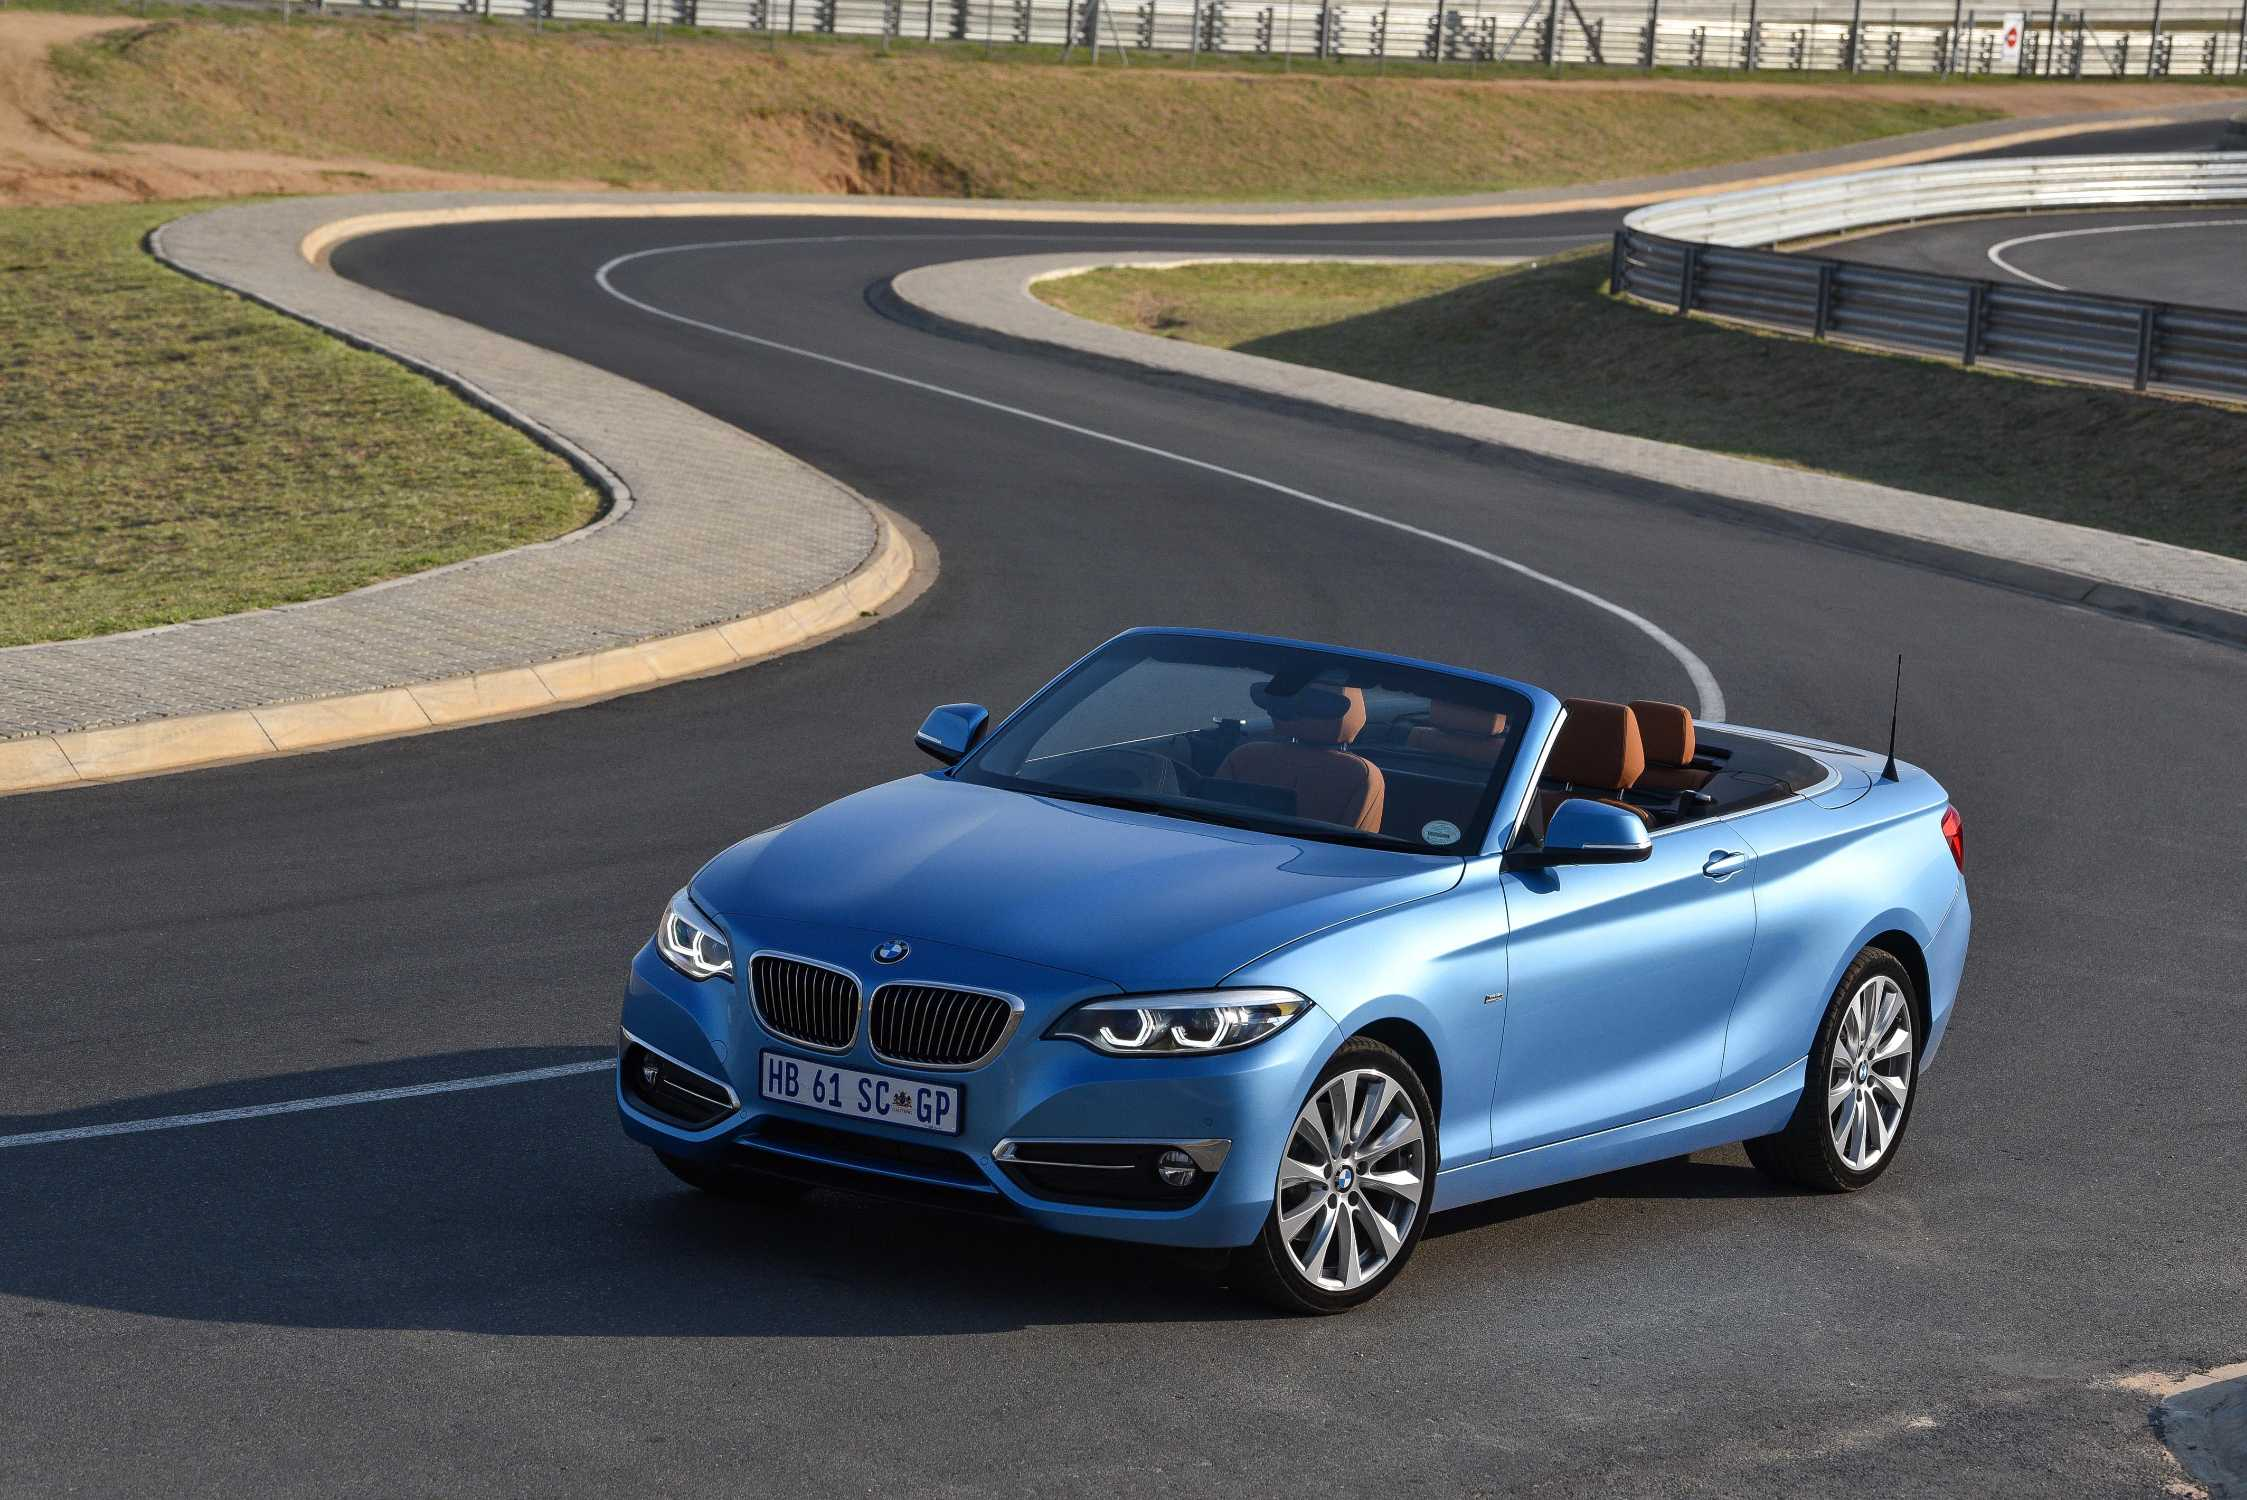 The new BMW 2 Series Coupe and BMW 2 Series Convertible ...